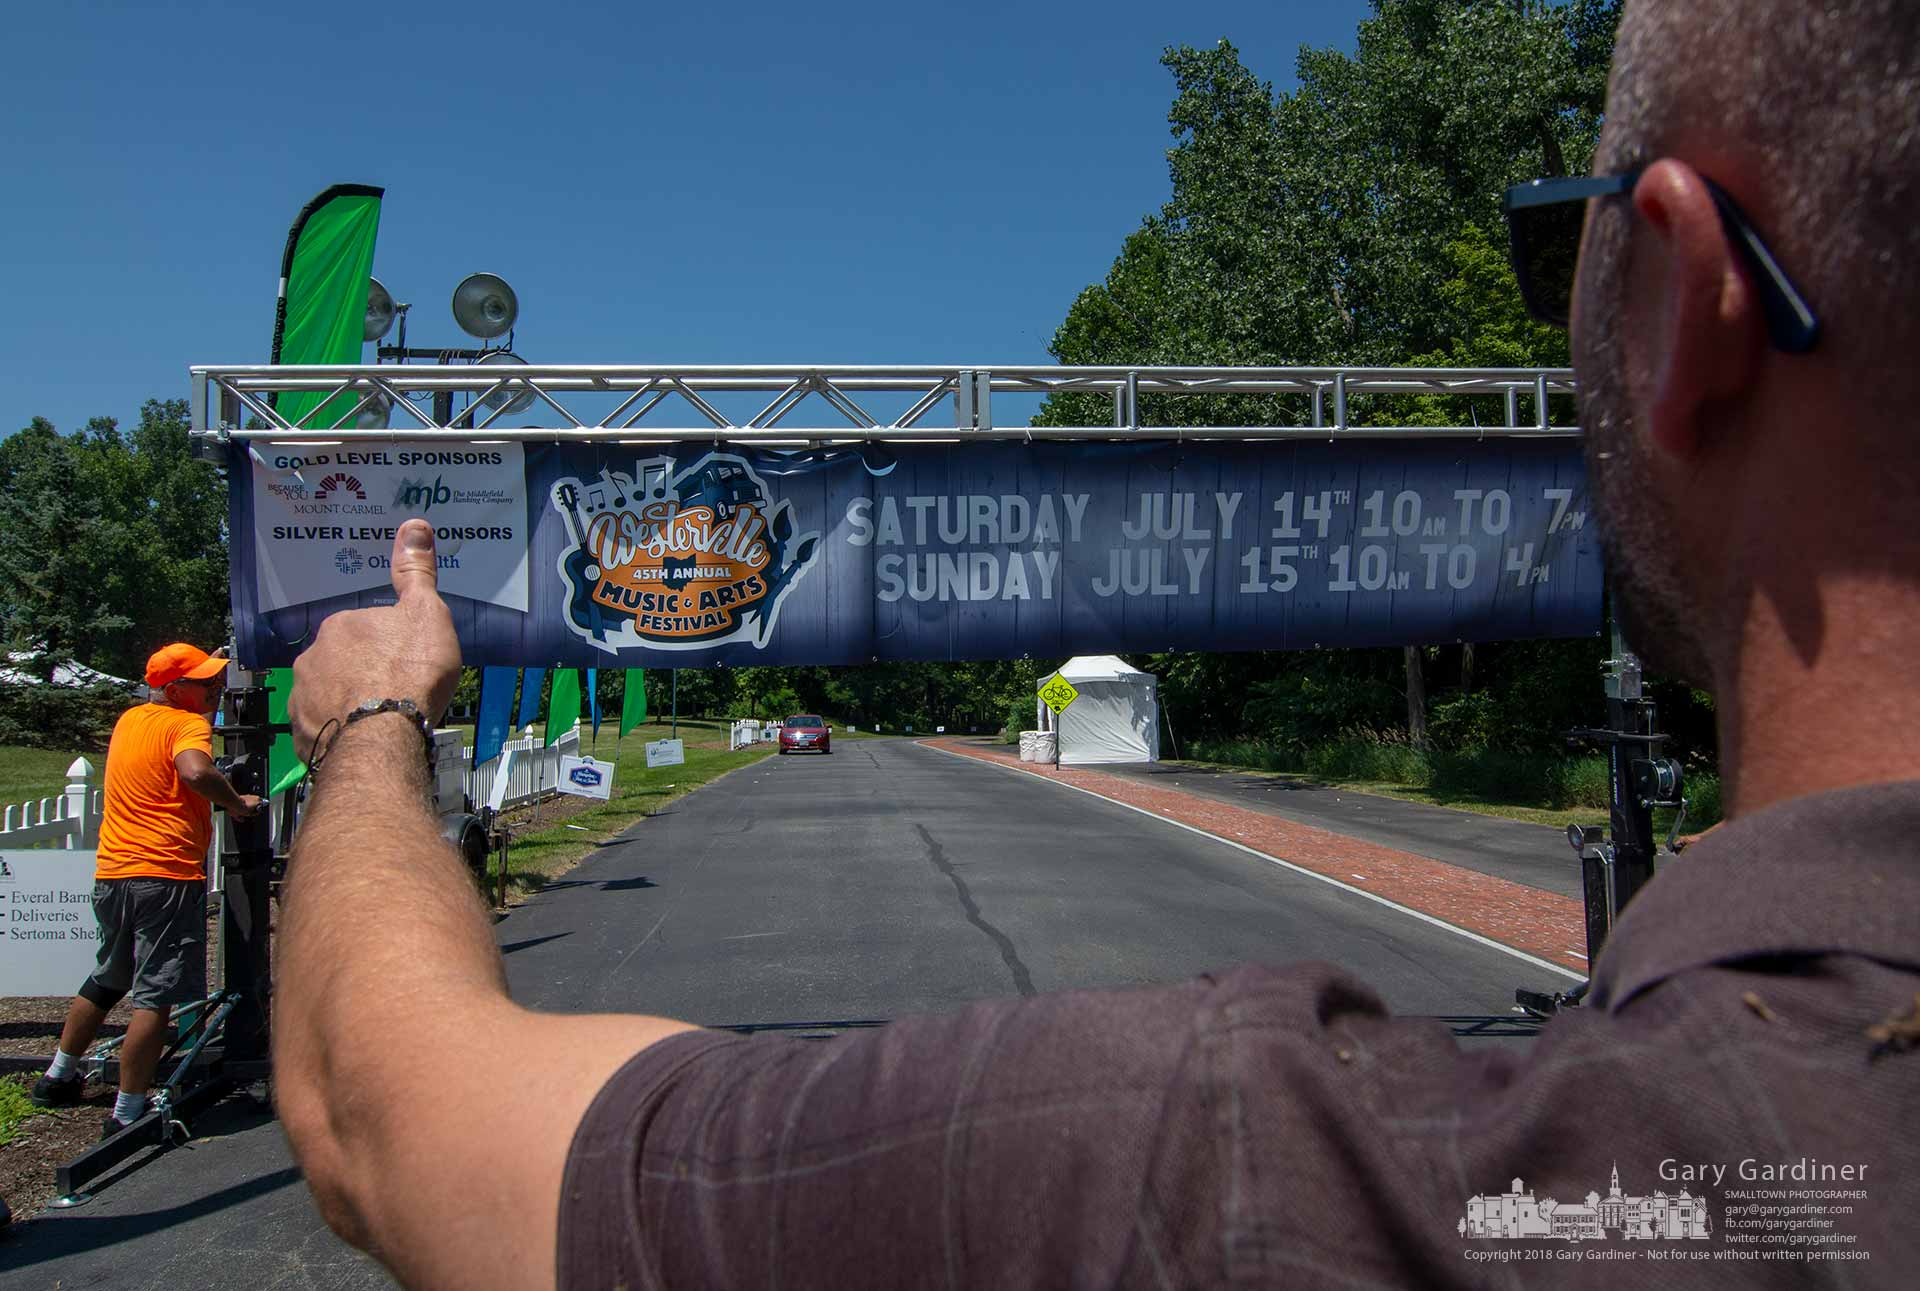 Matt Ulry signals thumbs-up as helpers level support girders before raising the Westerville Music And Arts Festival banner over Lindimore Way, the roadway that runs through the park where the festival opens Saturday. My Final Photo for July 13, 2018.